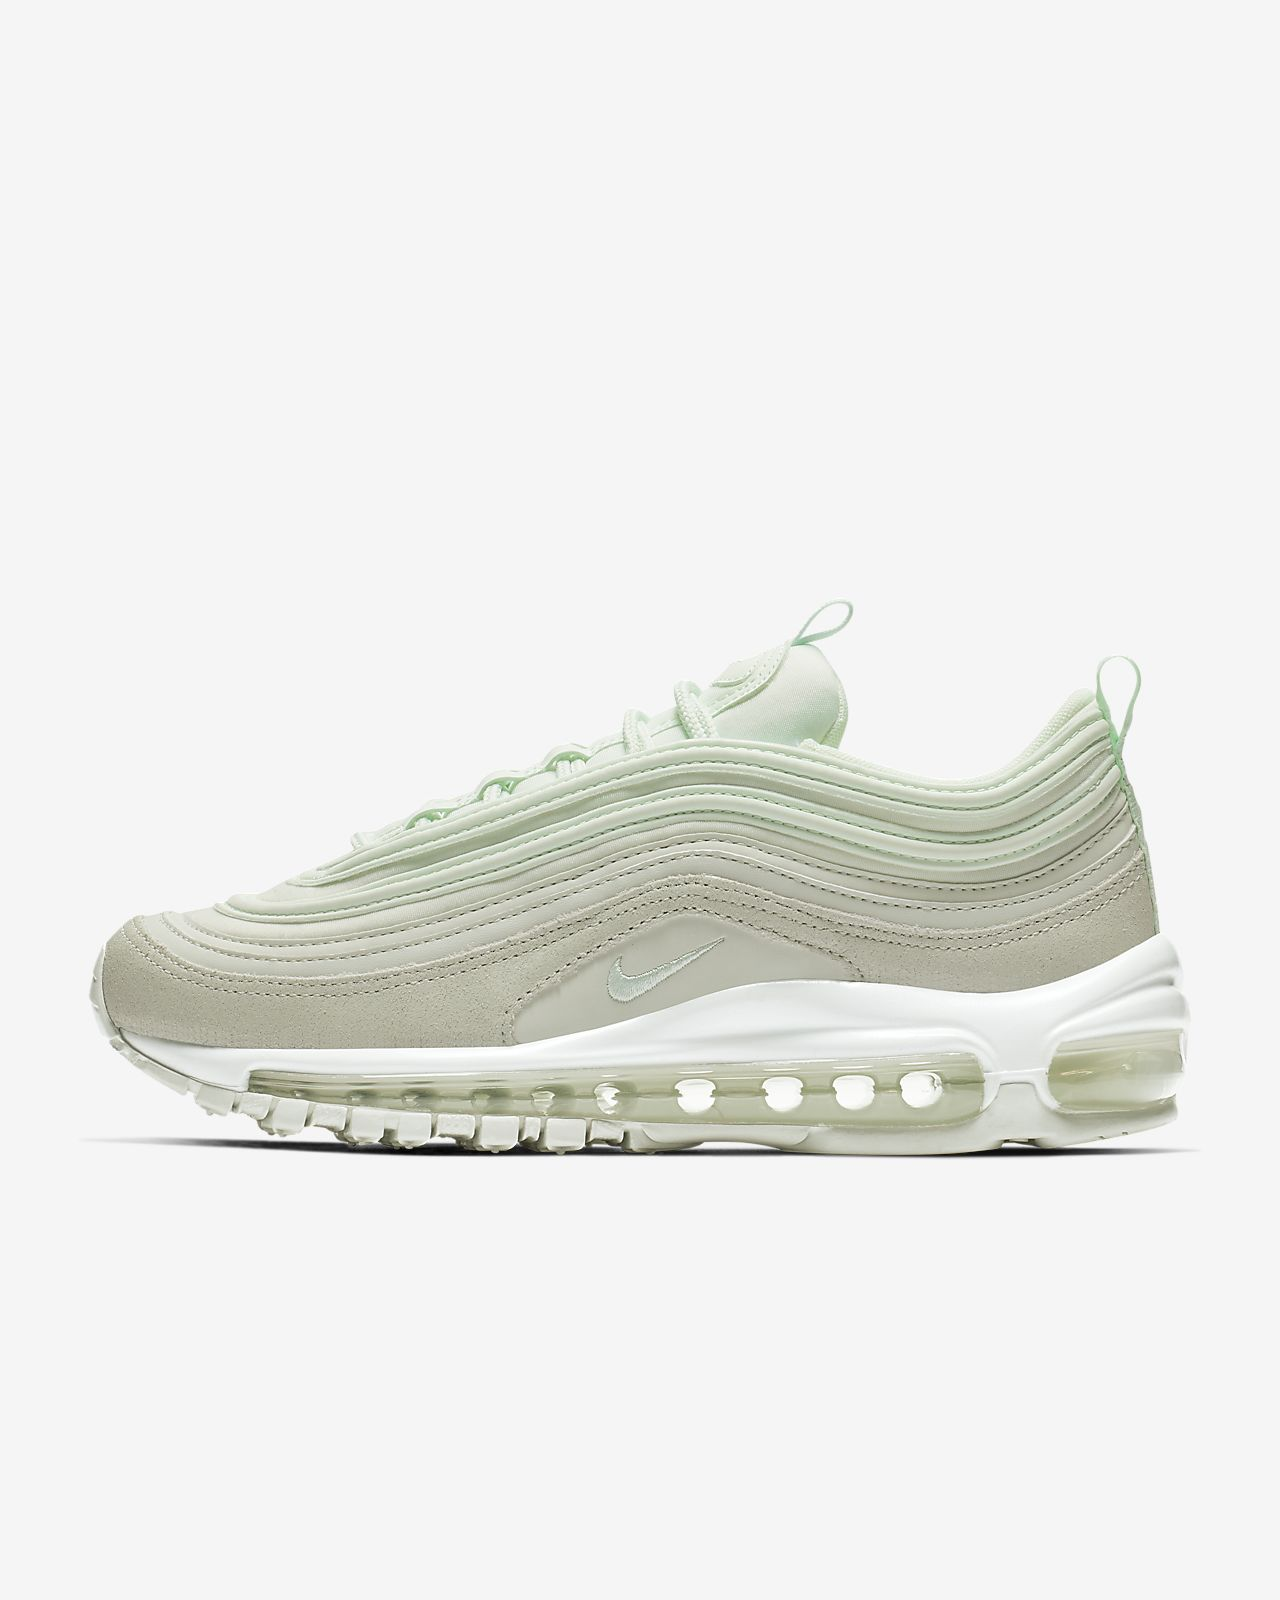 53863f5497aff Nike Air Max 97 Premium Women's Shoe. Nike.com GB